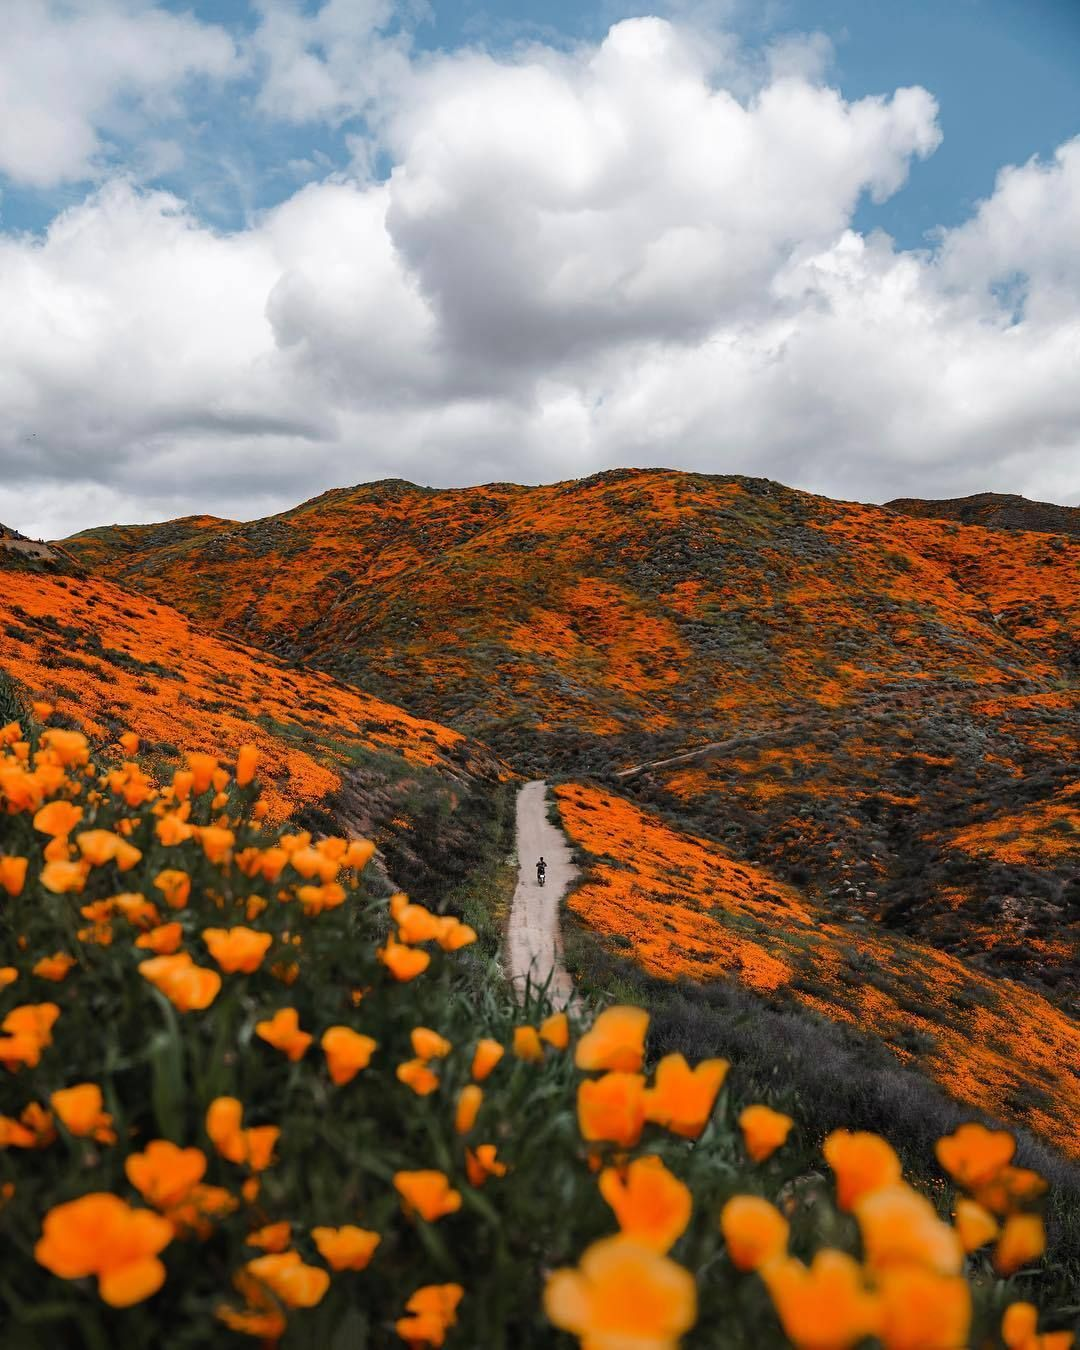 California Nature Landscape And Scenery Photography Blog On Tumblr California Nature California Travel Destinations Travel Aesthetic